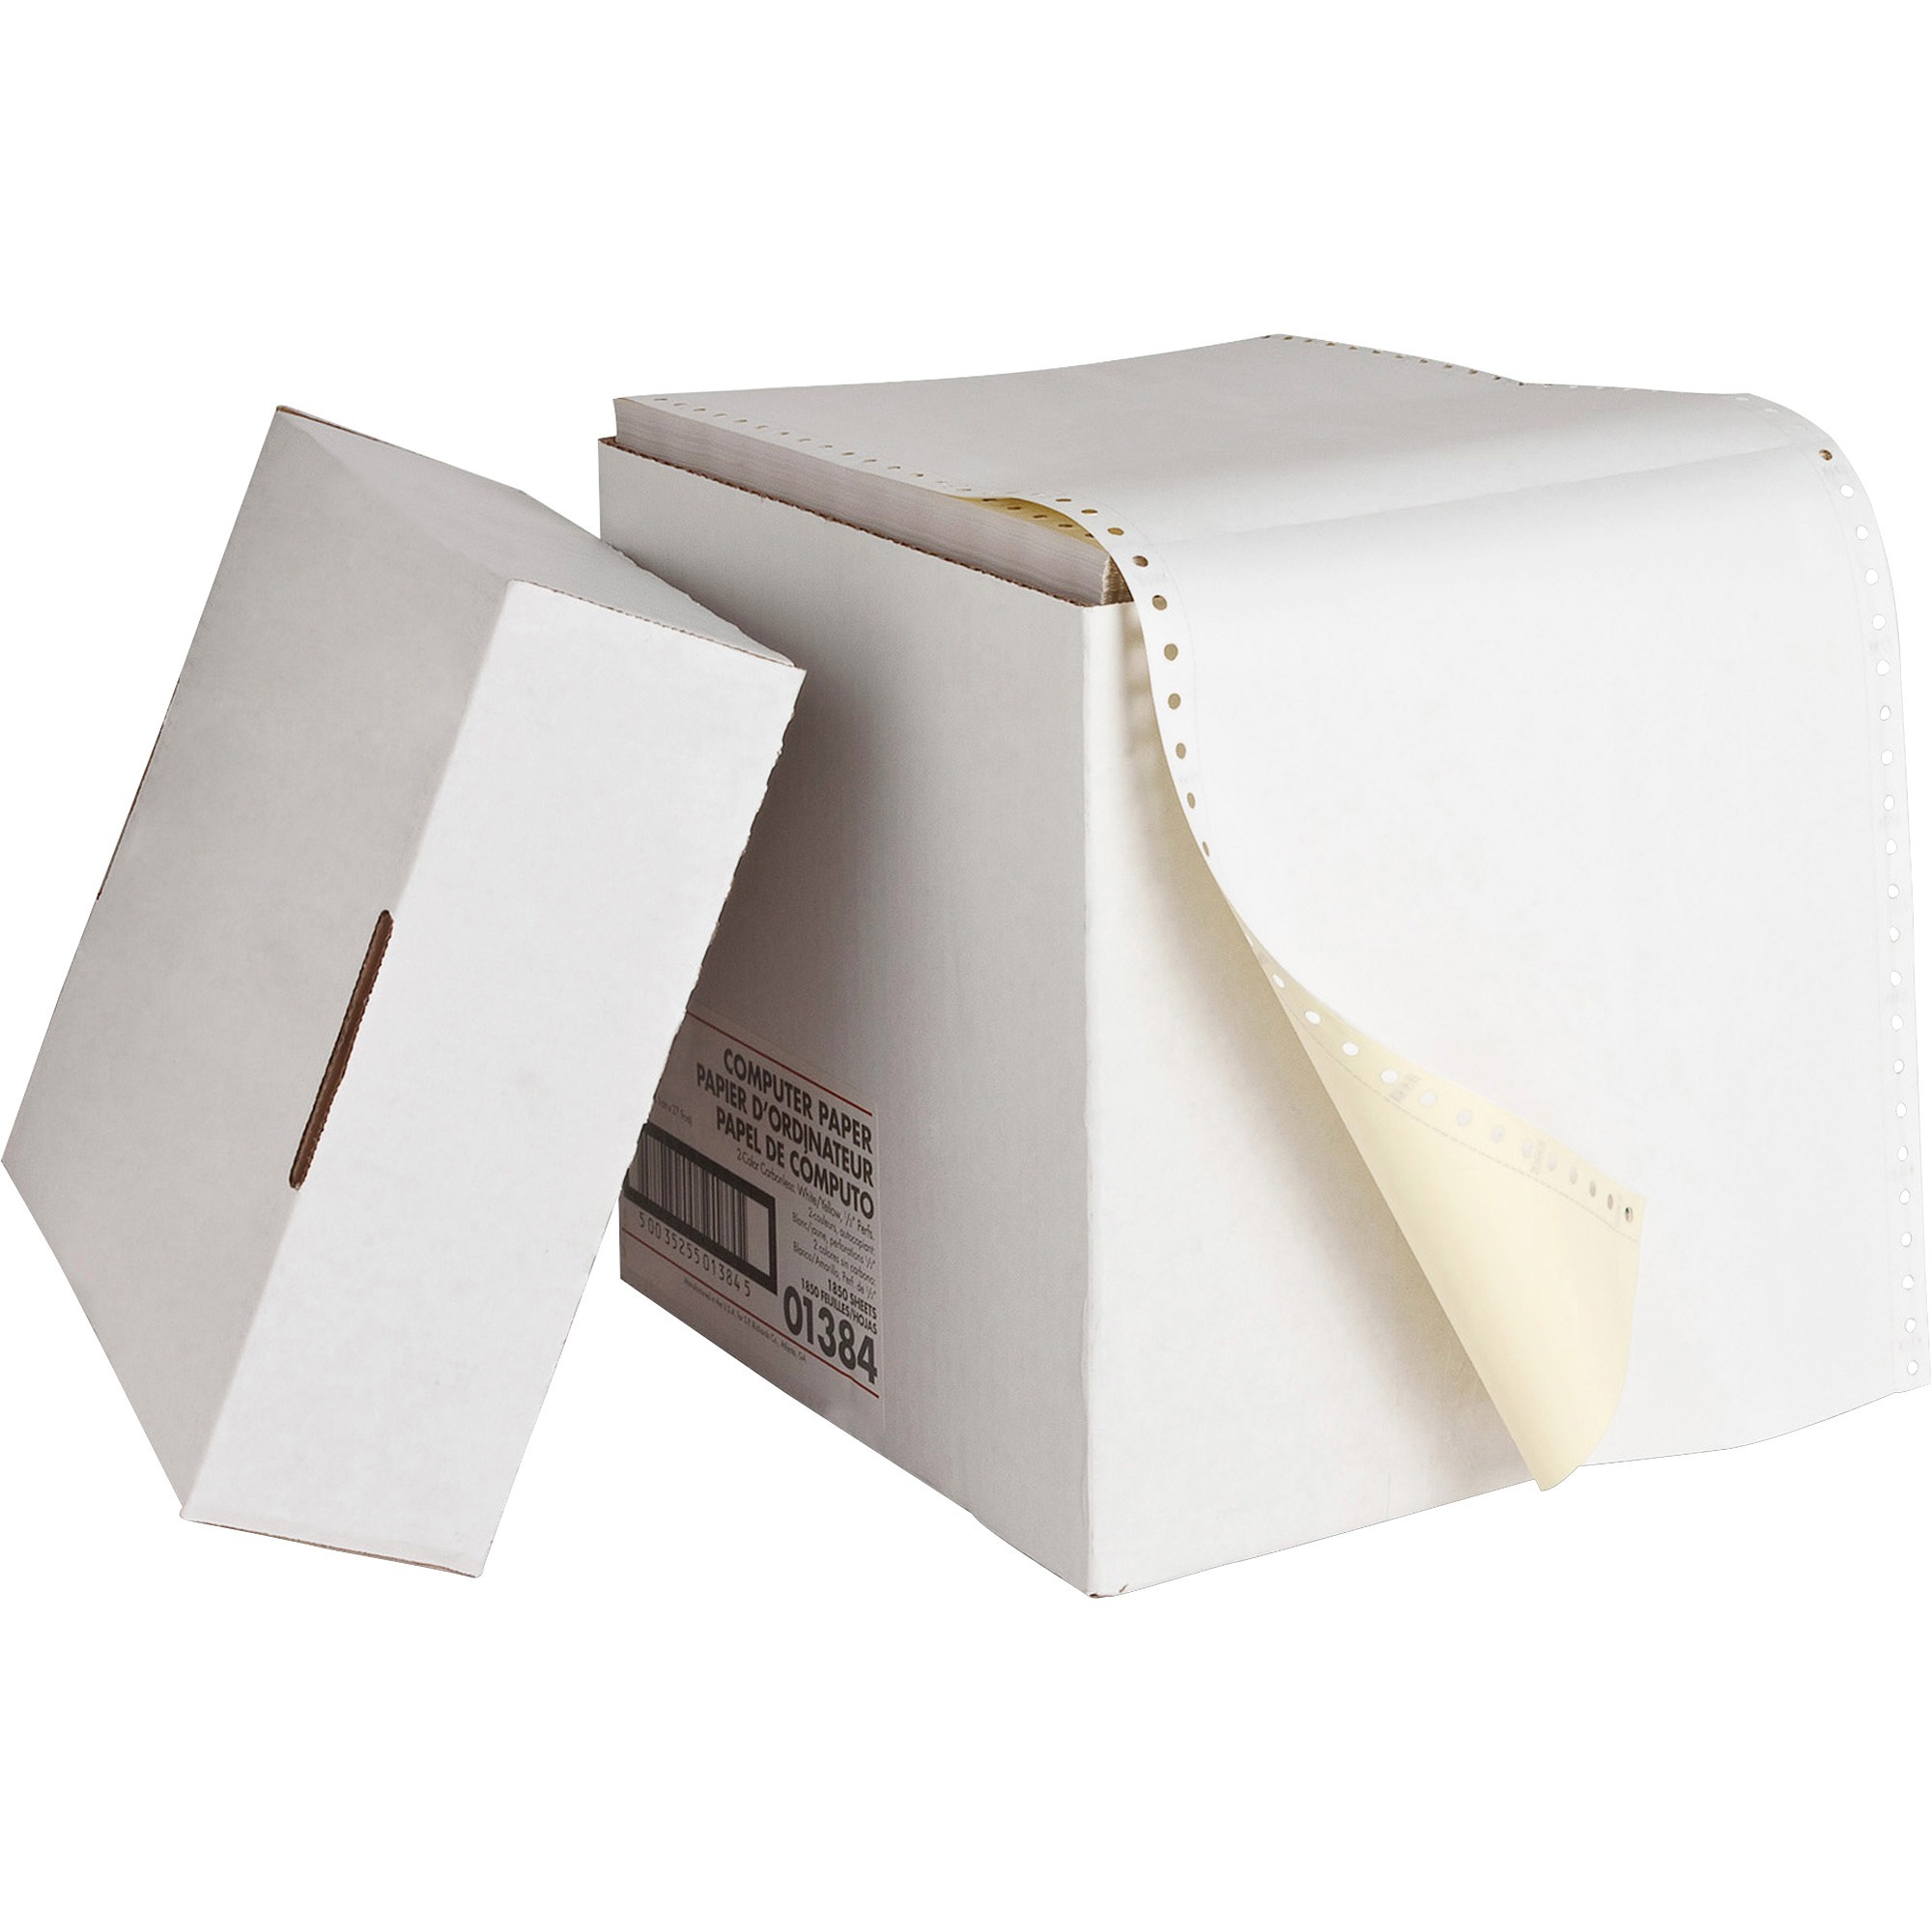 Kamloops Office Systems Office Supplies Paper Amp Pads Computer Amp Fax Paper Multi Part